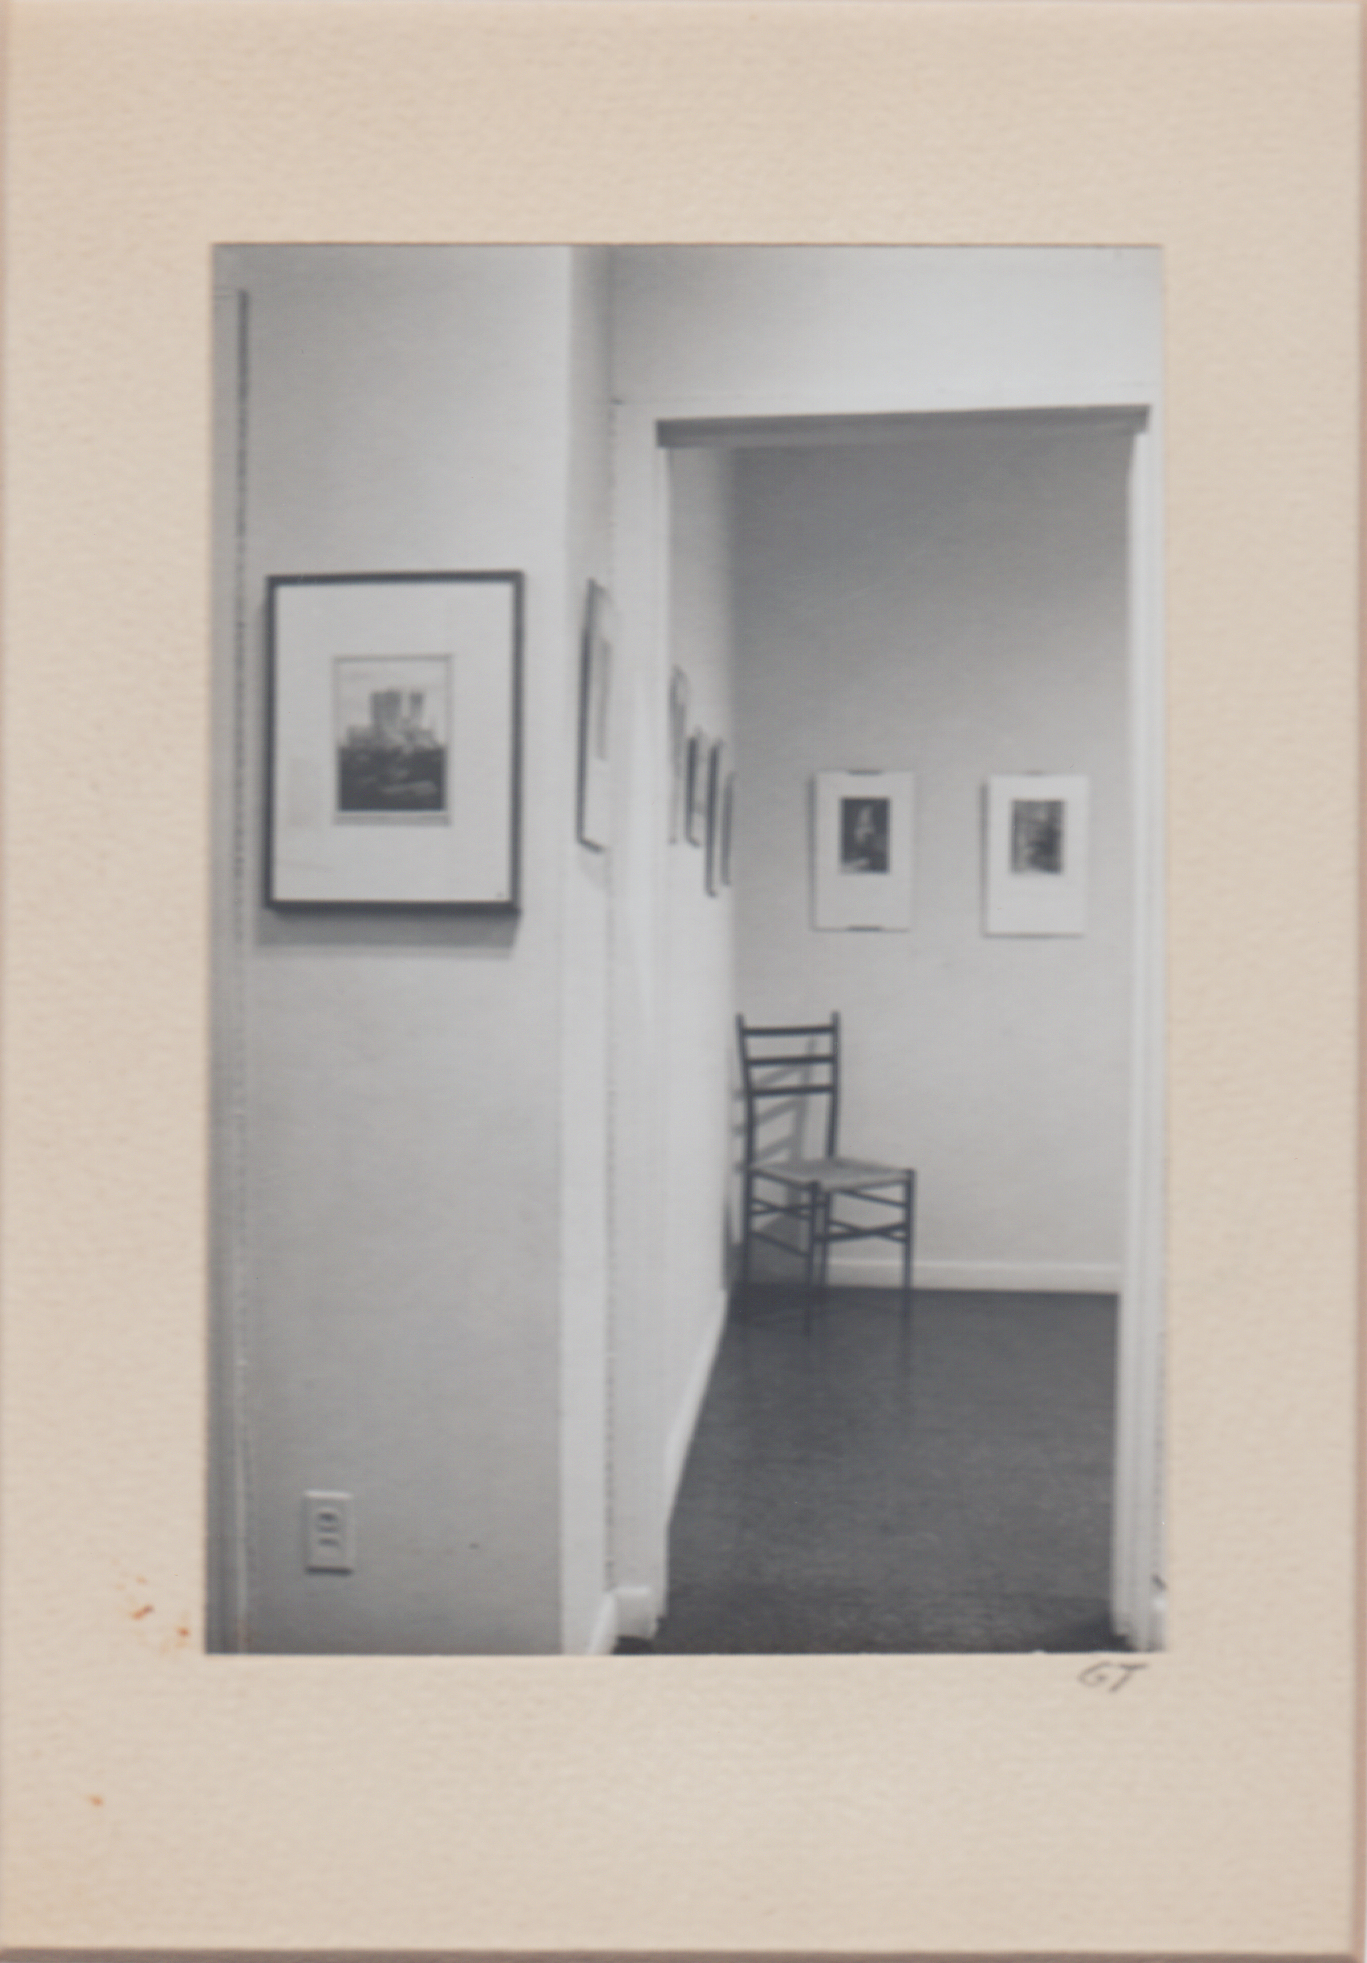 Witkin Gallery